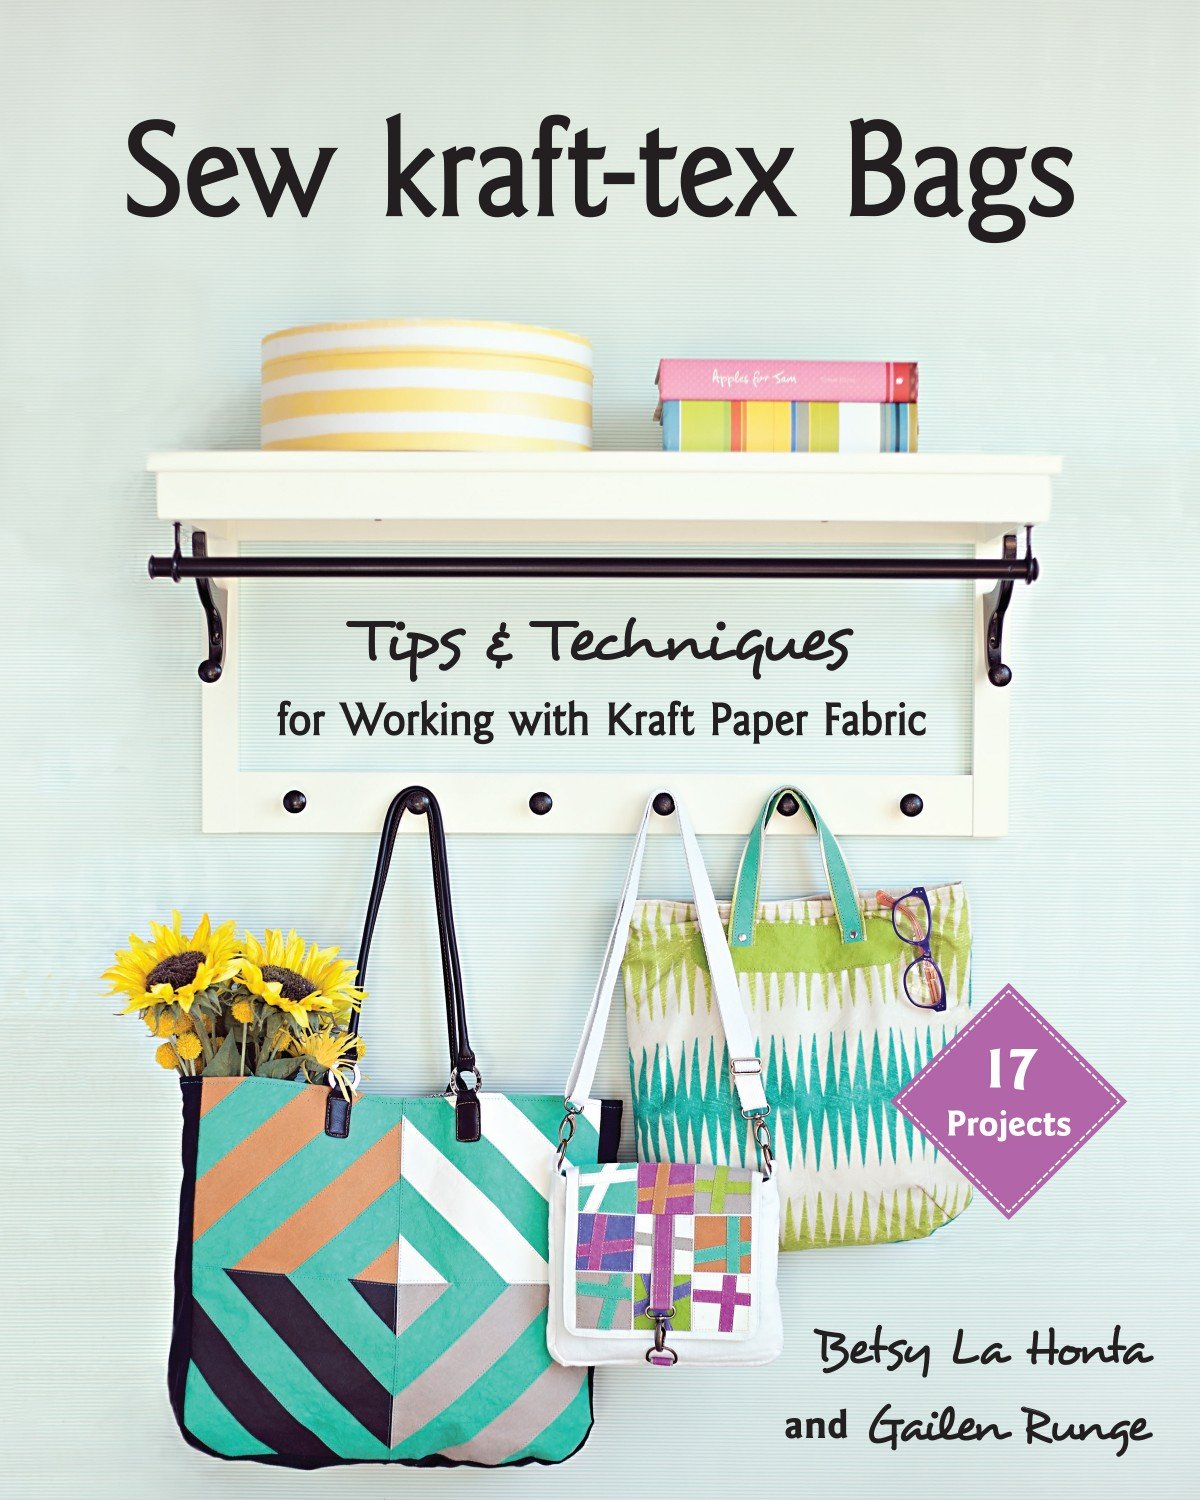 Sew kraft-tex Bags - 17 Projects, Tips & Techniques for Working with Kraft Paper